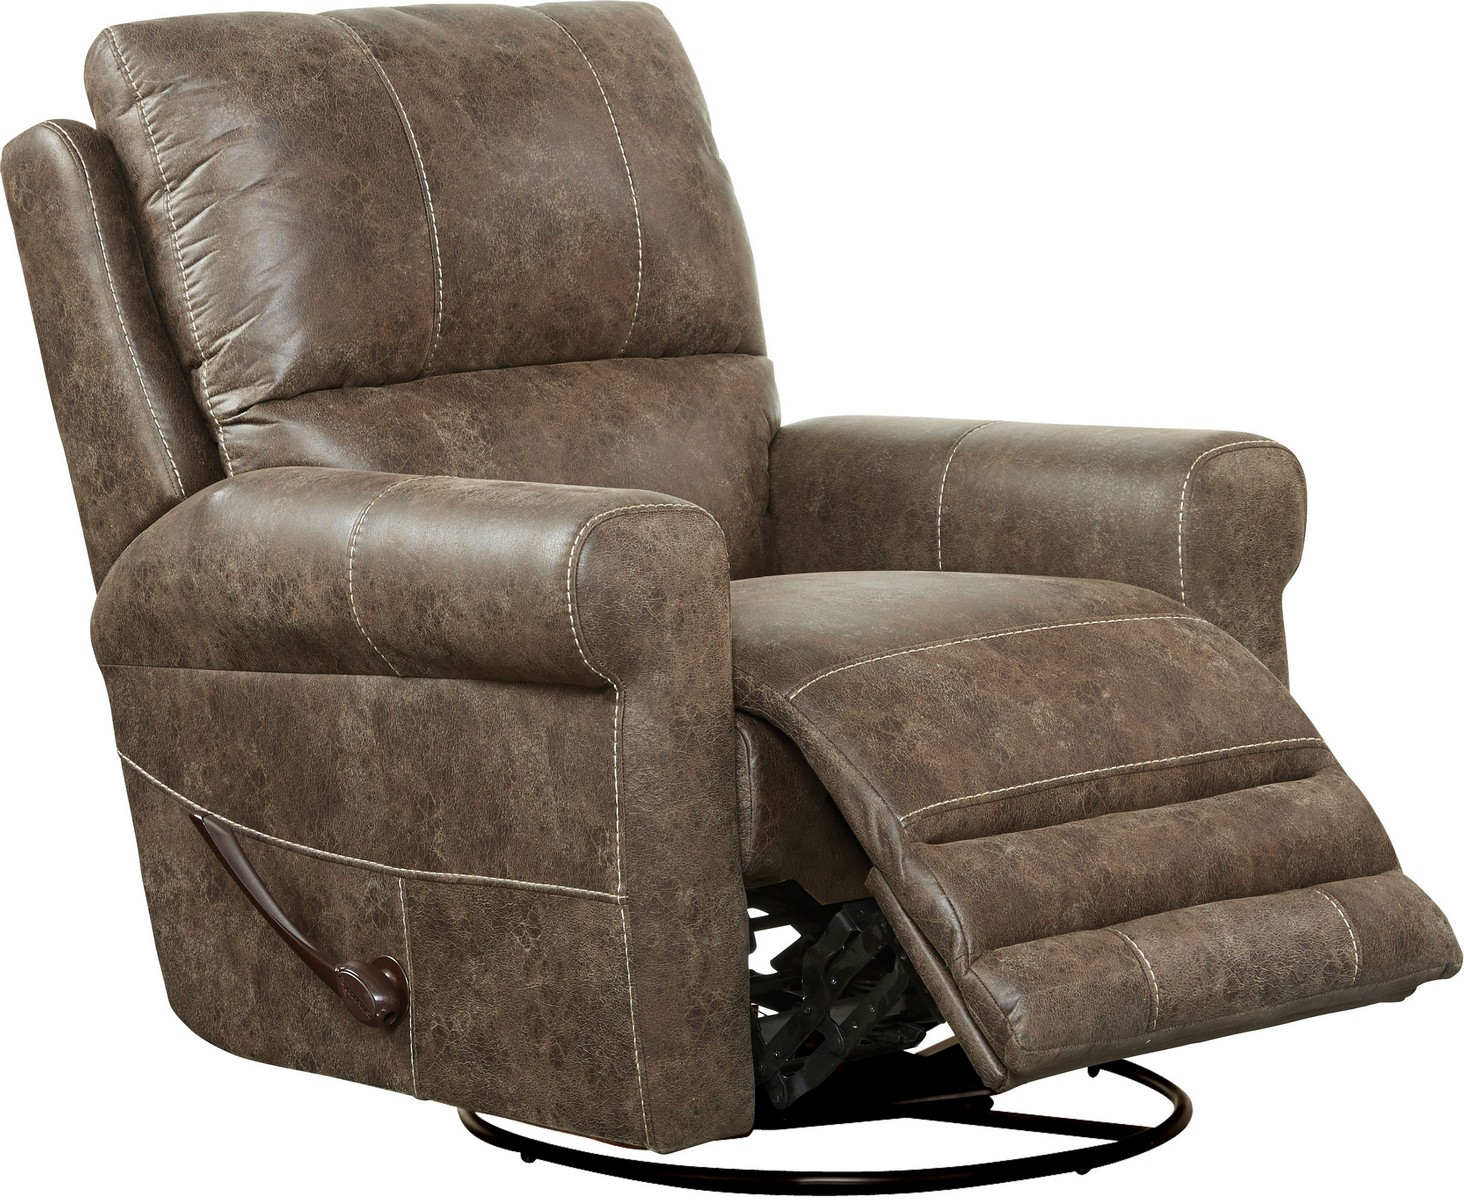 Catnapper Chair Catnapper Maddie Swivel Glider Recliner Ash Cn 4753 5